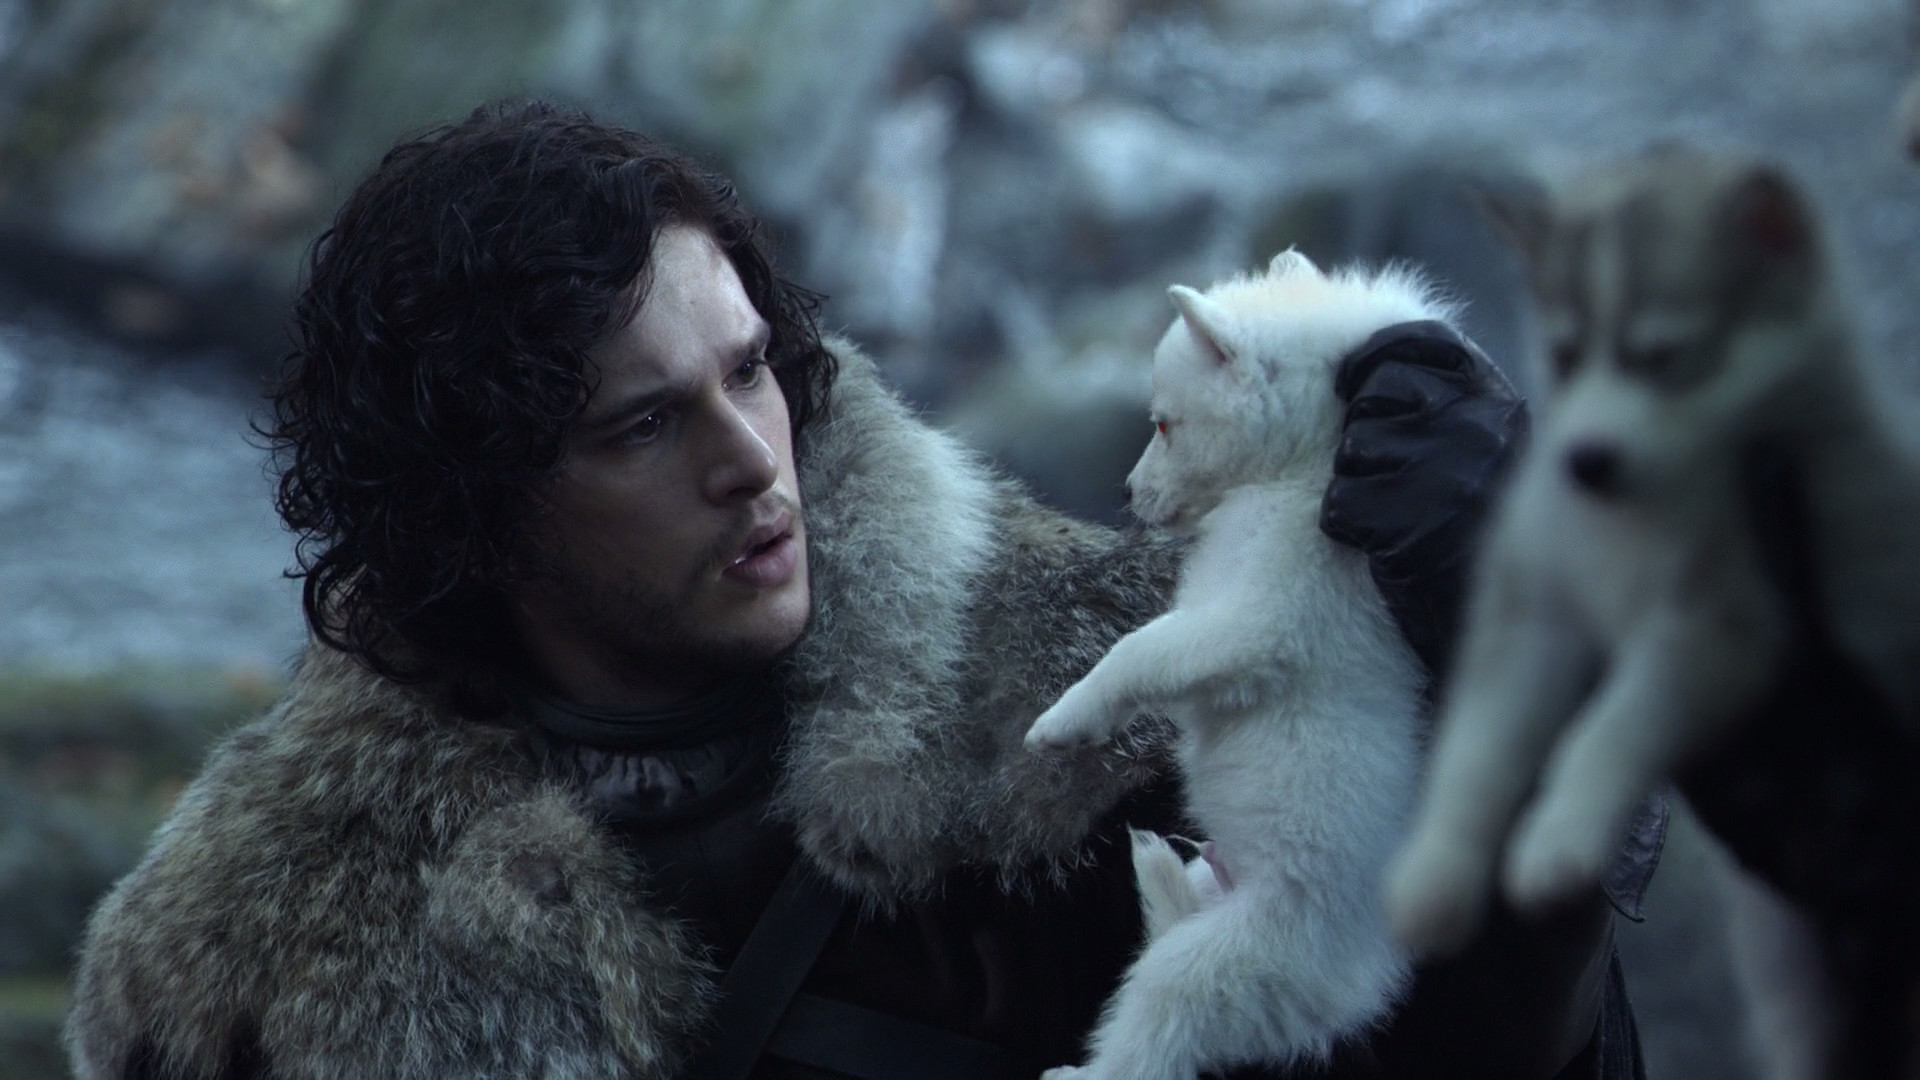 Jon Snow finds Ghost as a pup.